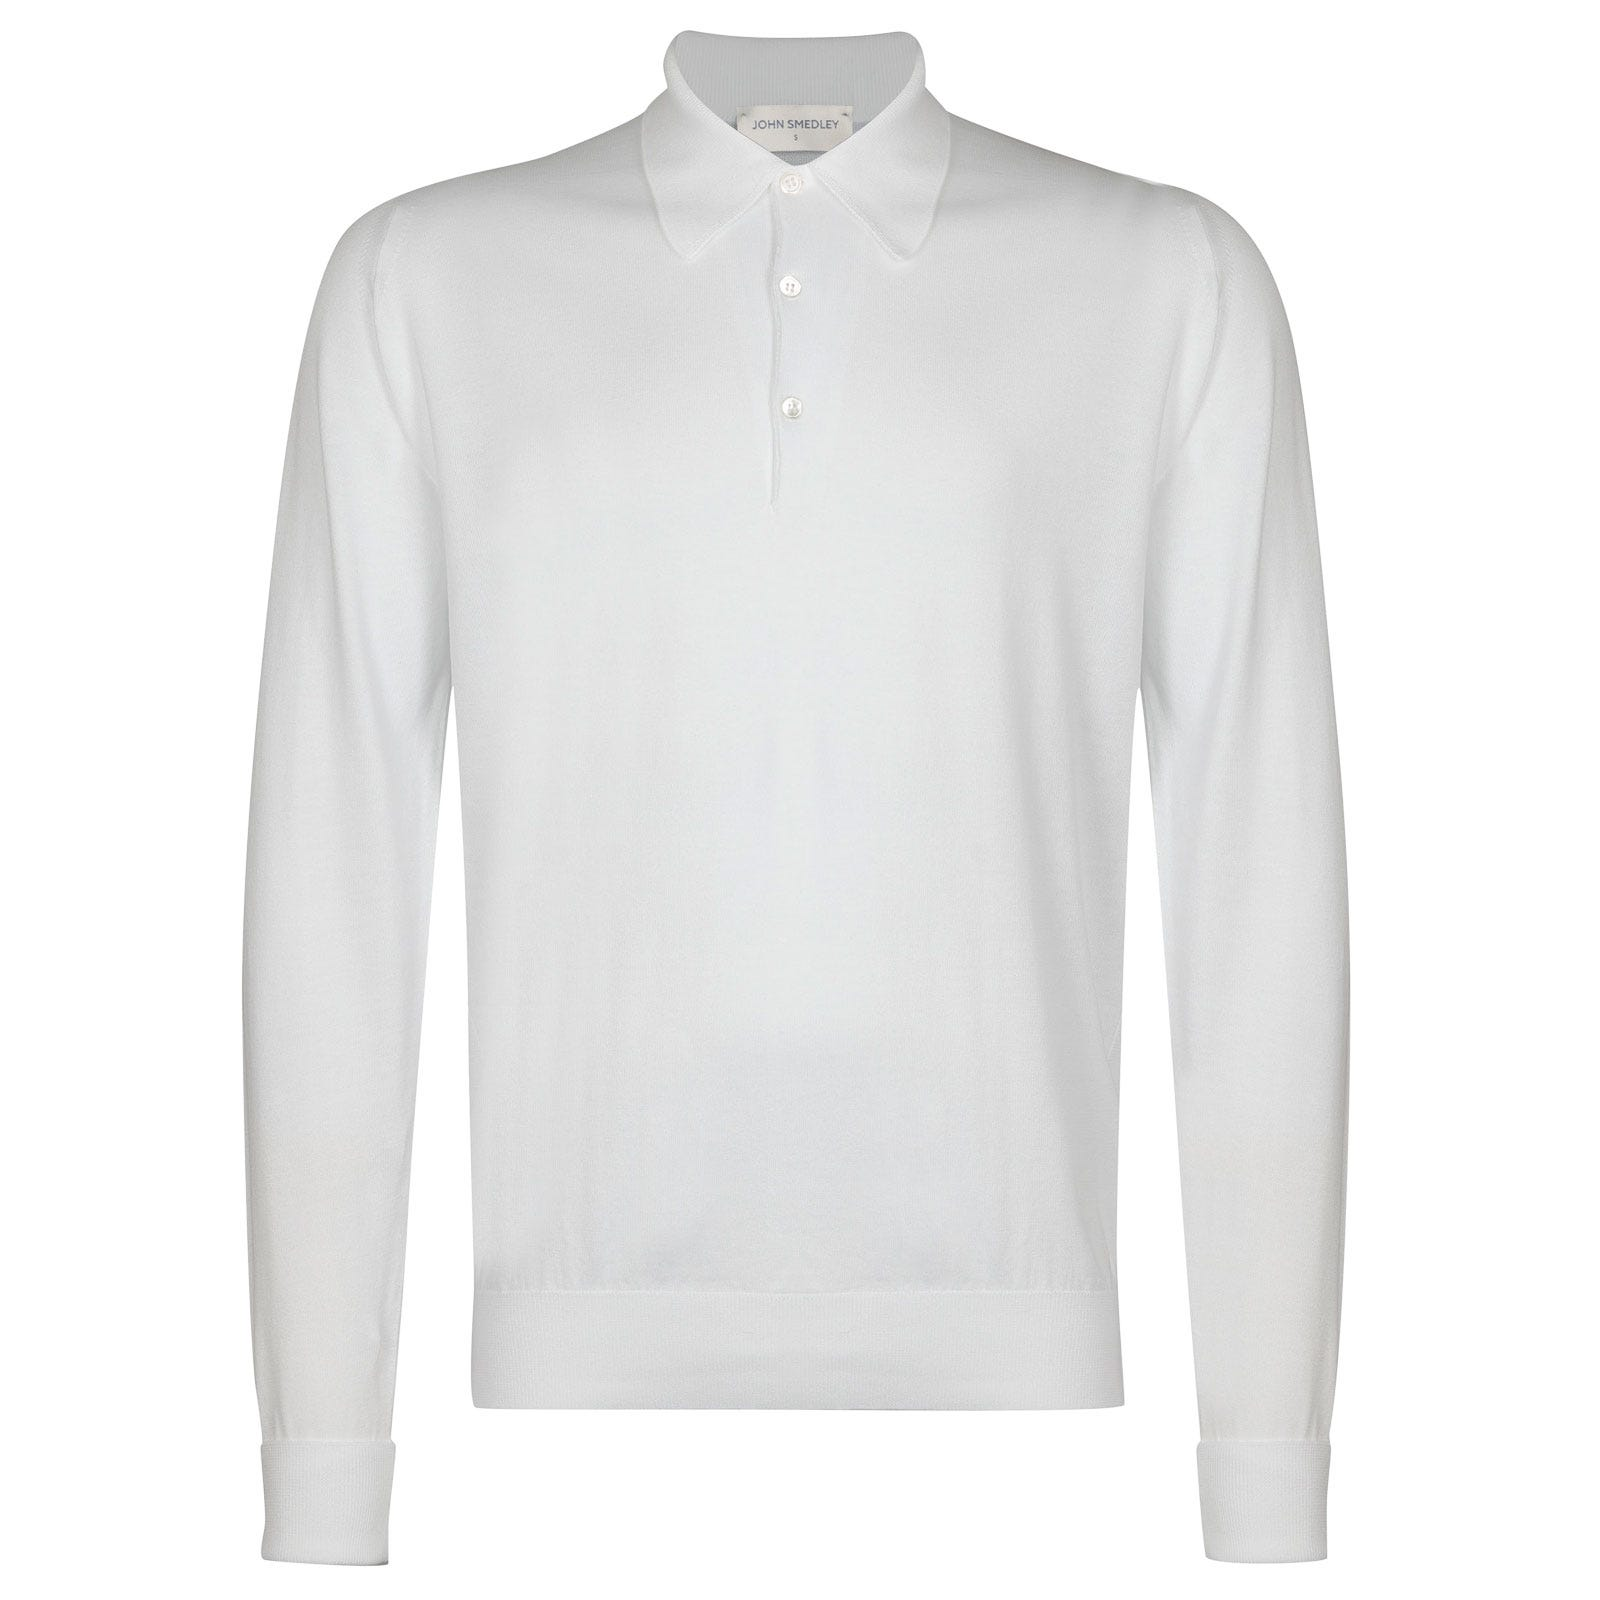 John Smedley finchley Sea Island Cotton Shirt in White-XXL